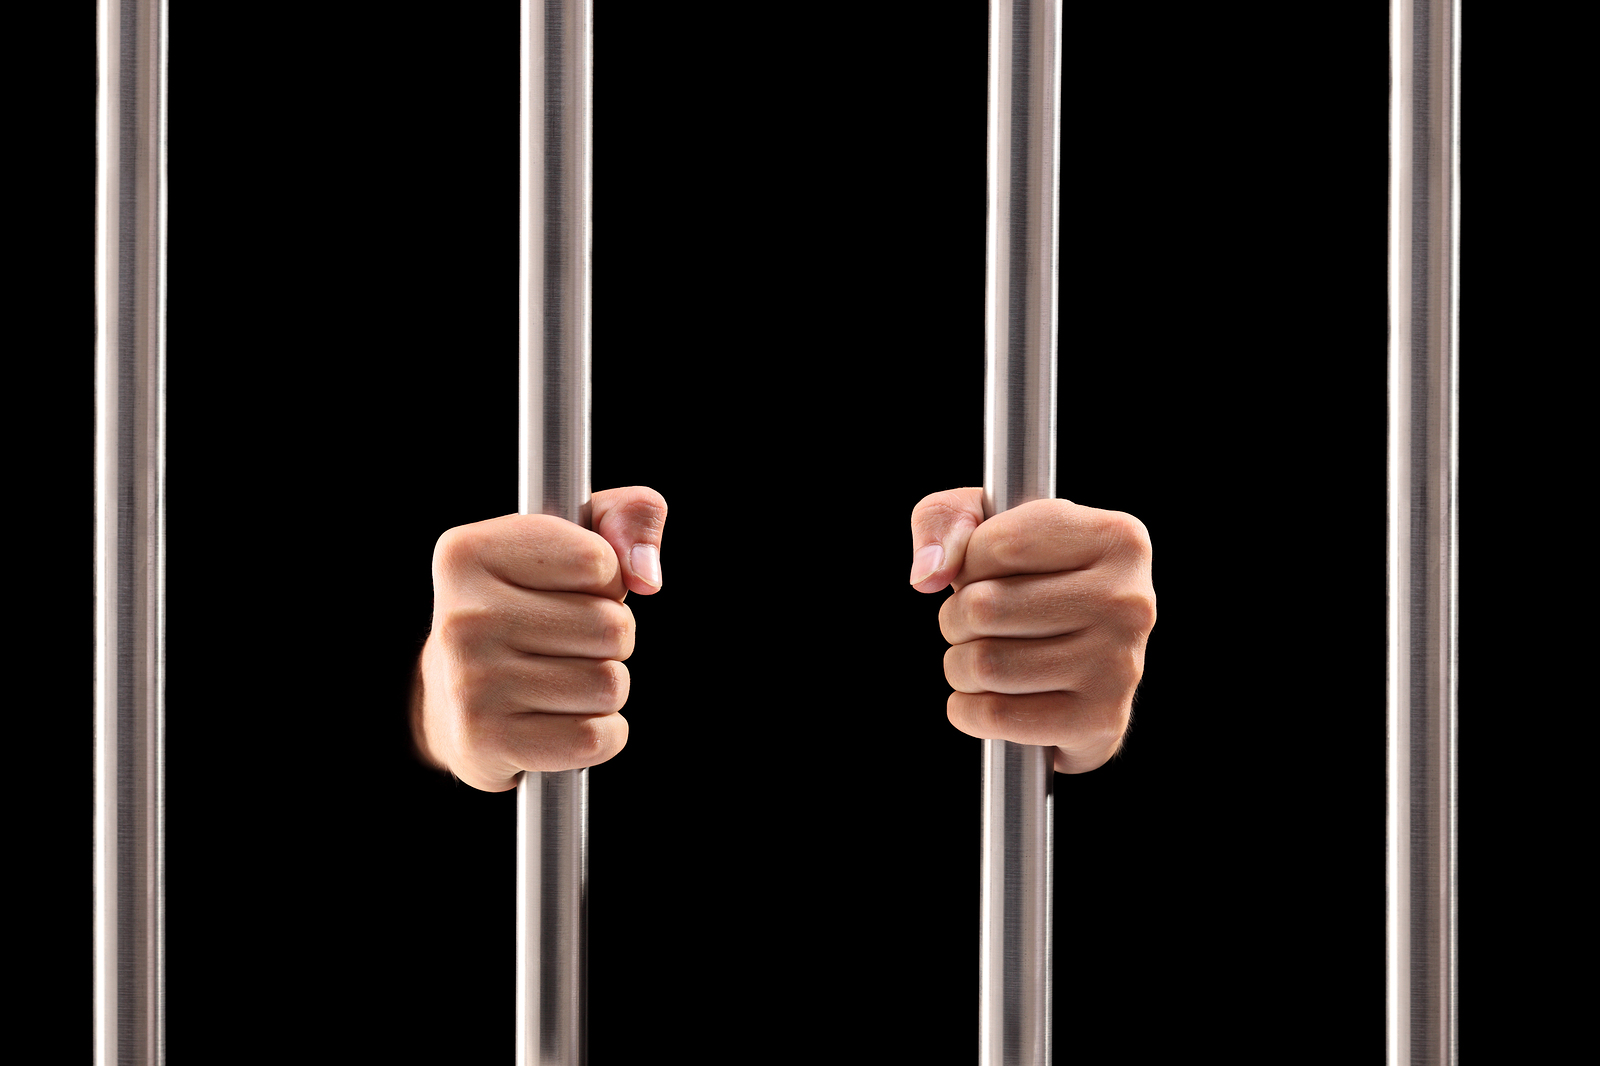 Male hands holding prison bars isolated on black background